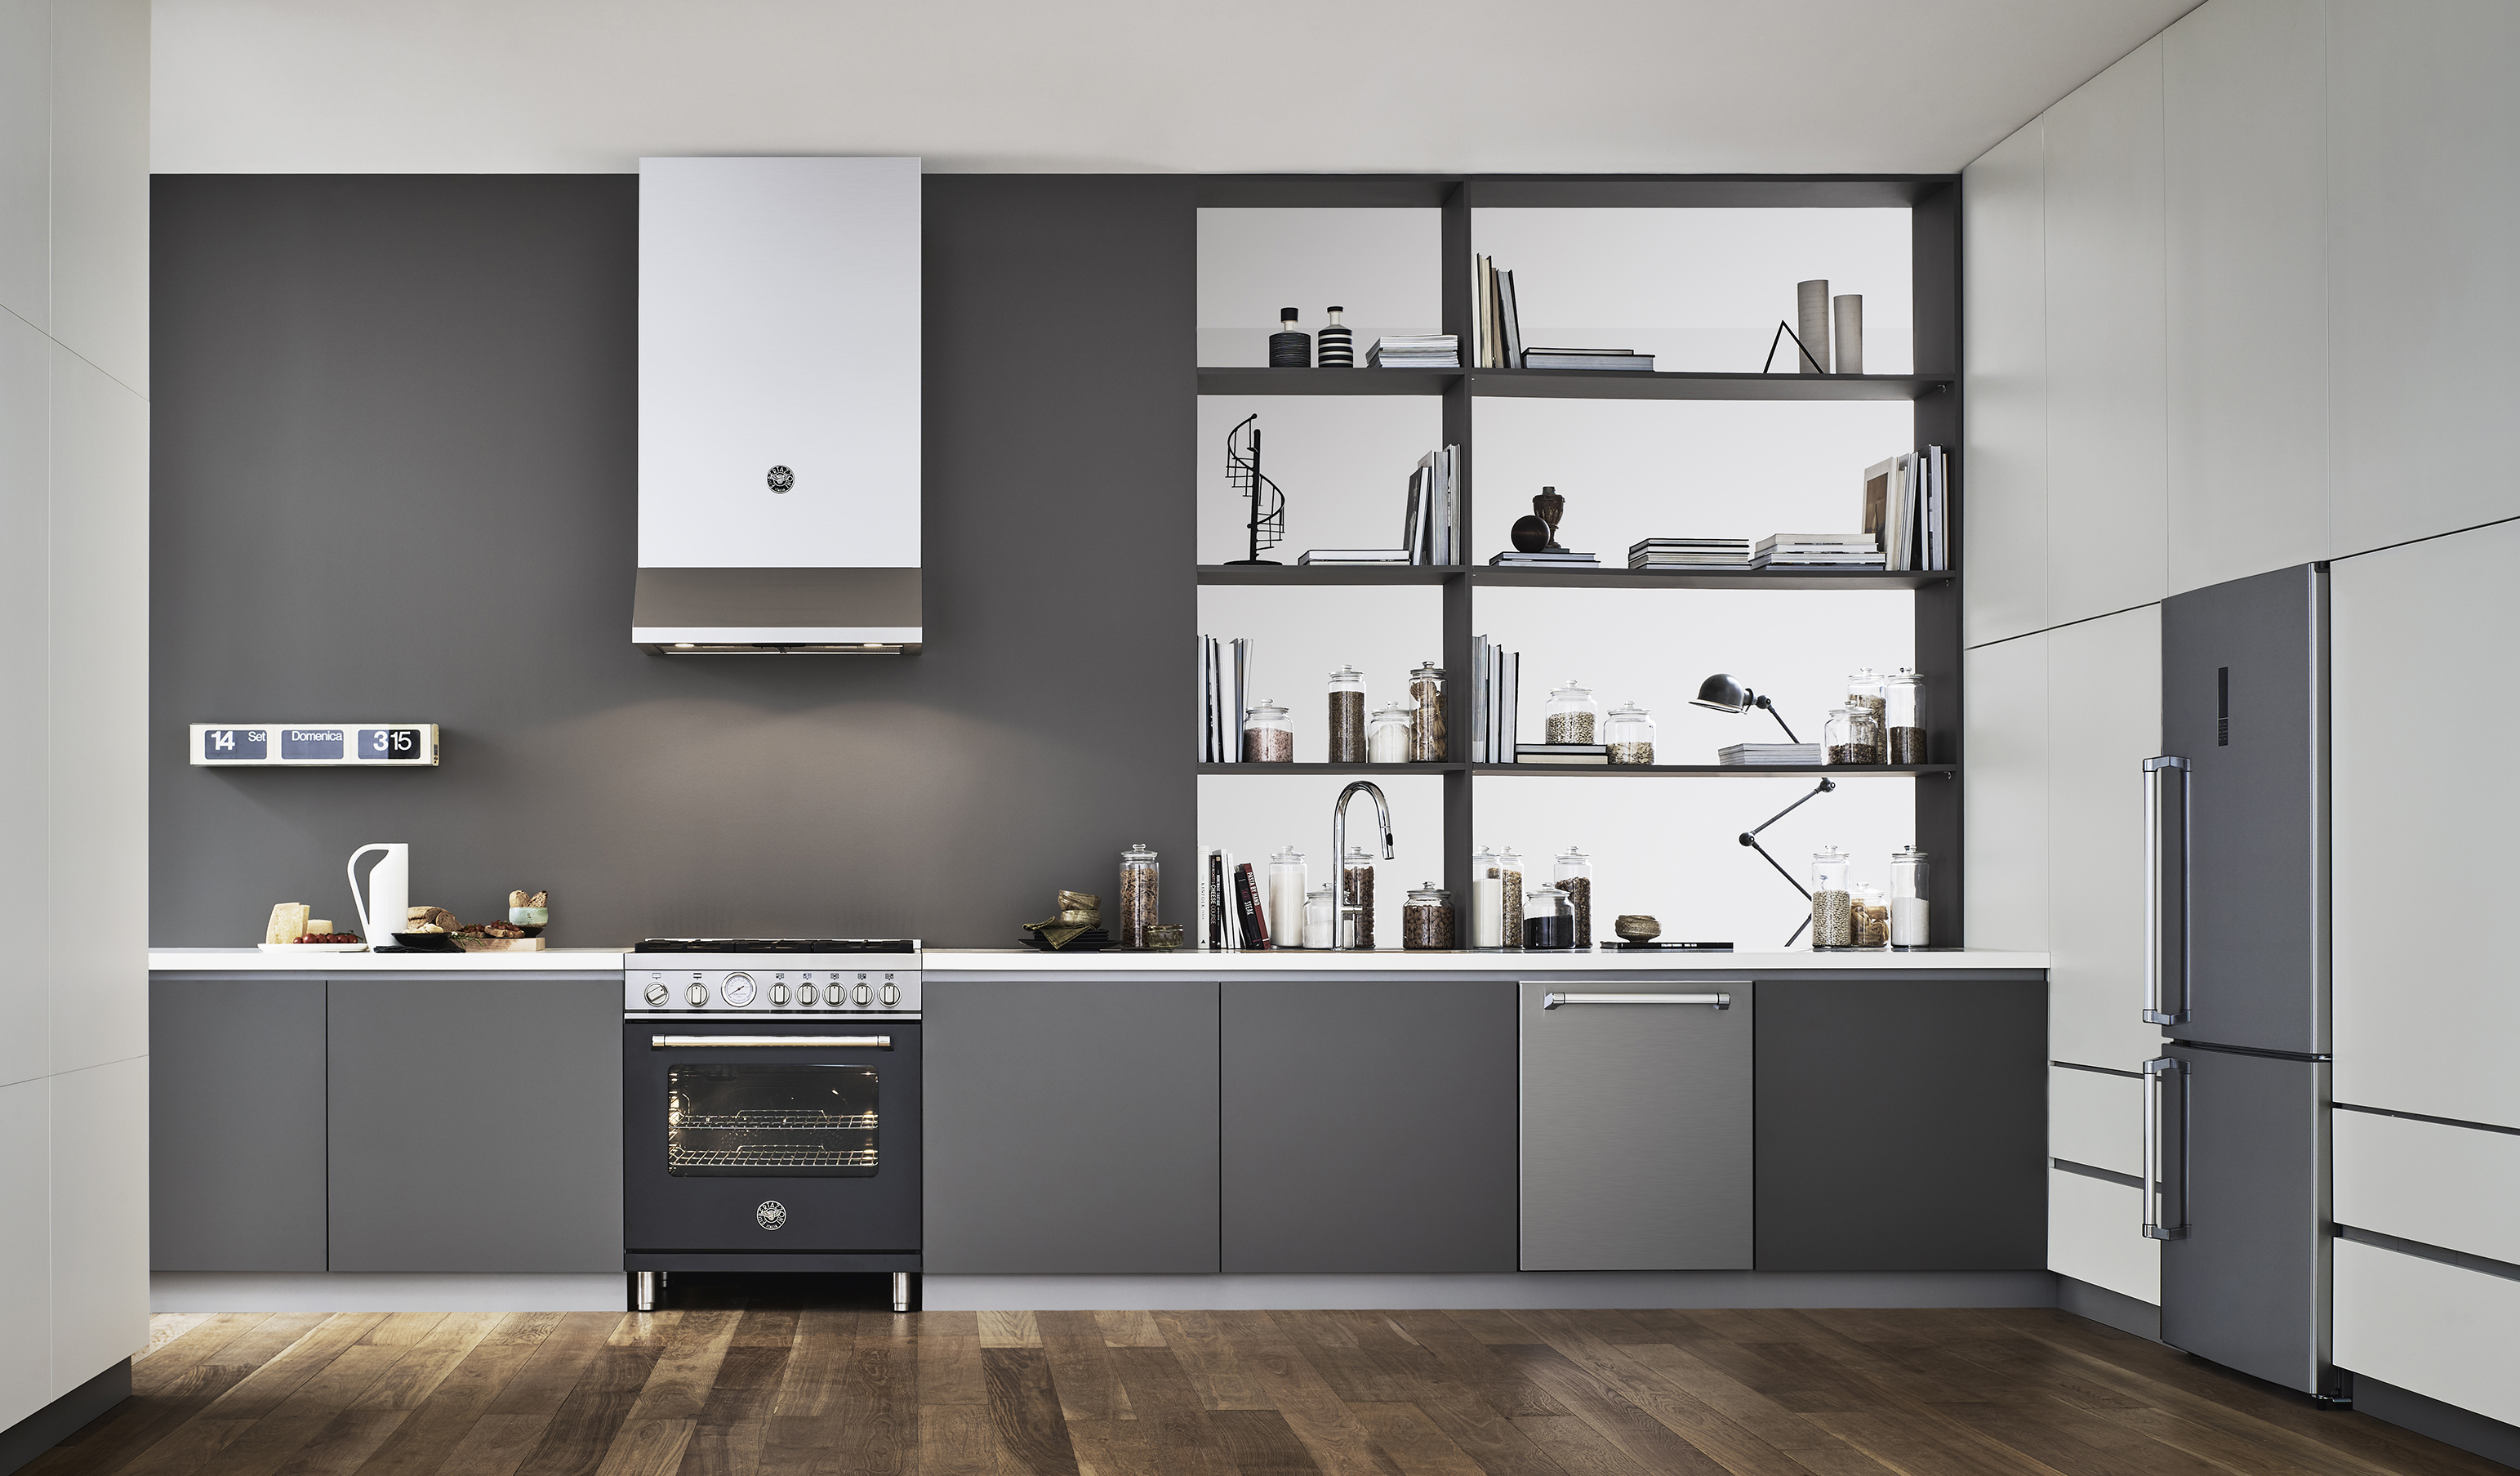 Bertazzoni Adds New Styles Sizes To Appliance Offerings